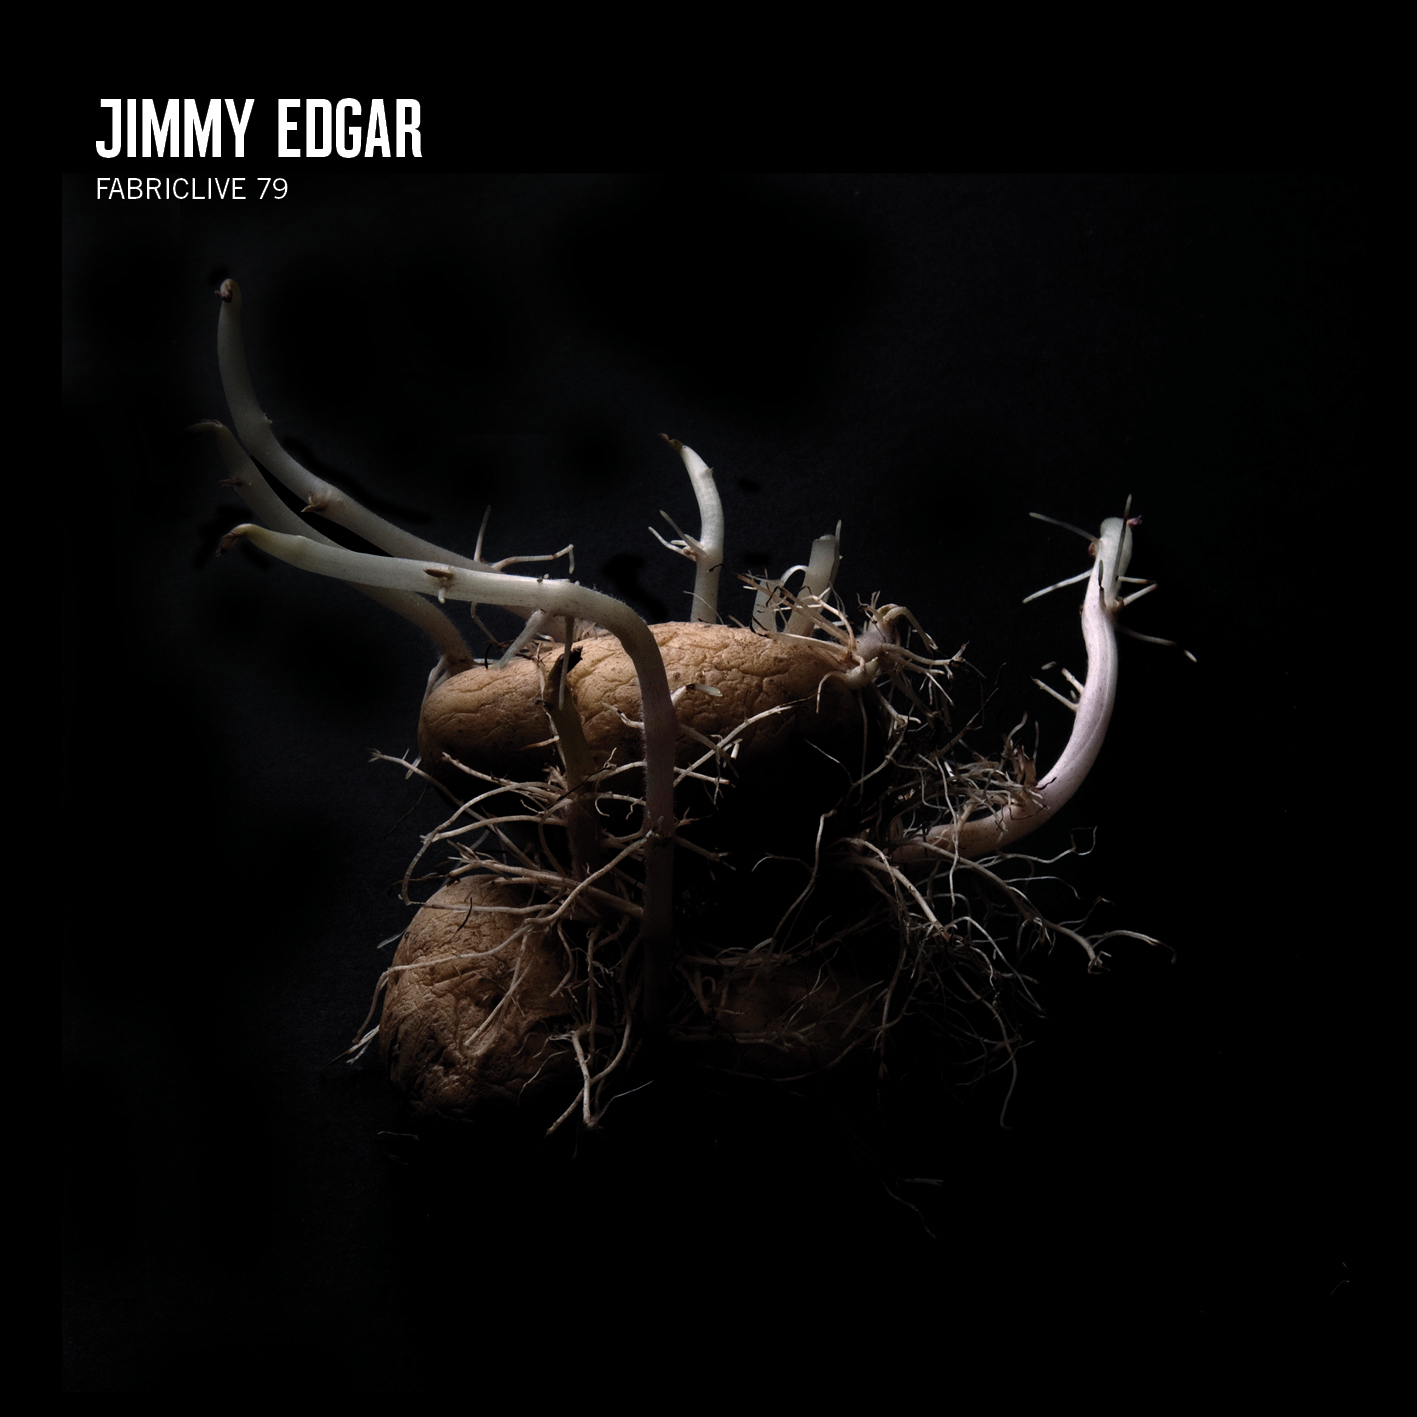 Jimmy Edgar – Fabriclive 79 (Fabric)